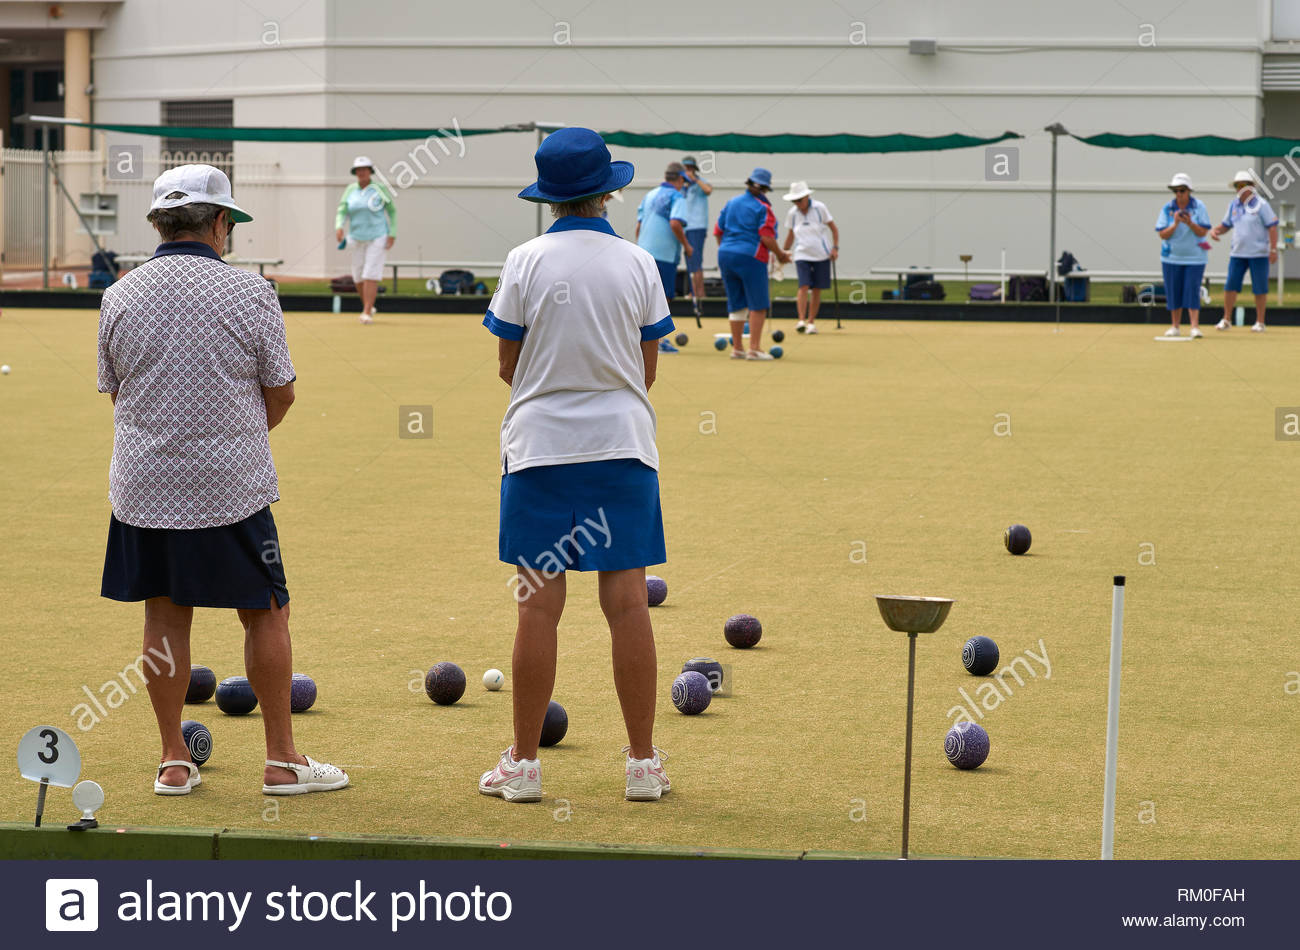 Older women in shorts, skirts and hats; playing amateur competition lawn bowls, at Yamba Bowls Club, during the summer of 2019. - Stock Image